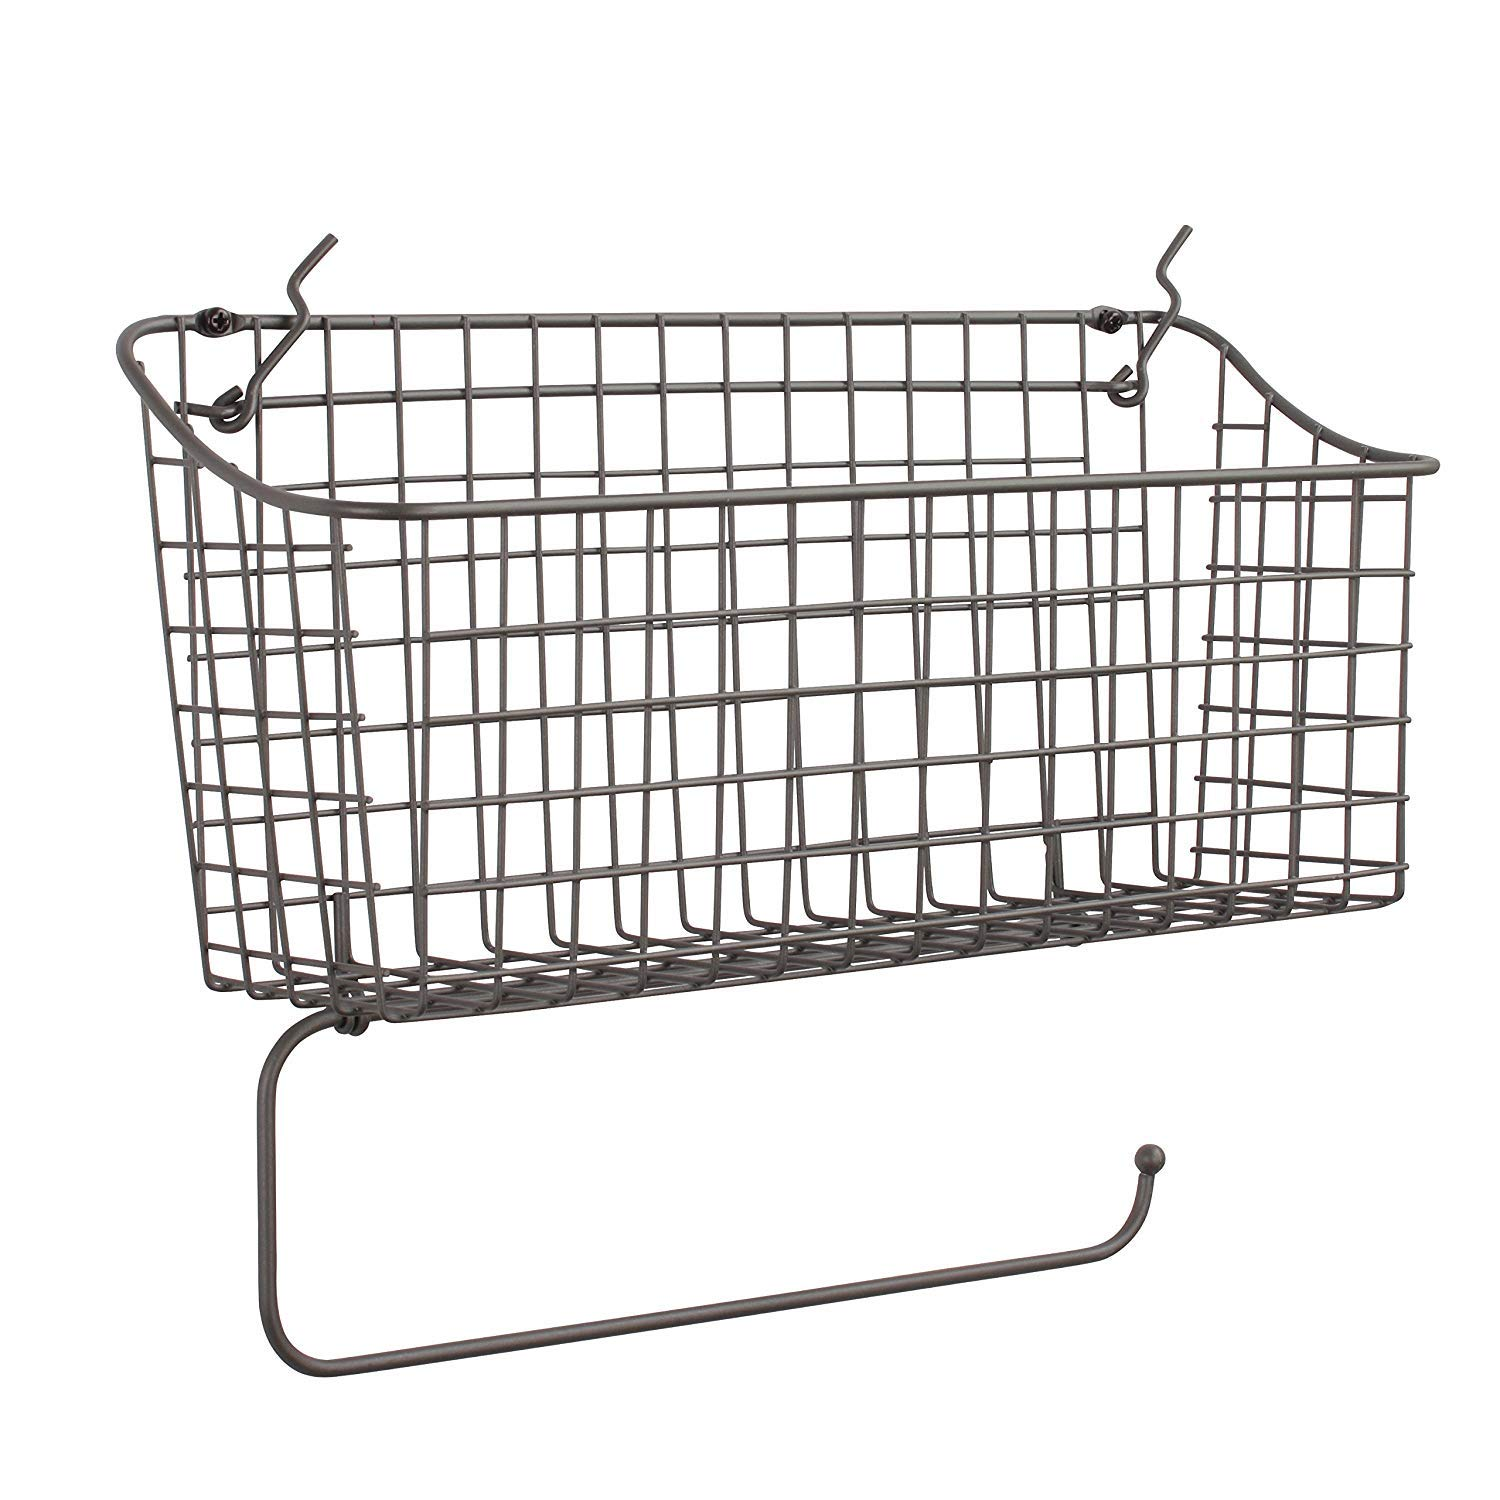 Spectrum Diversified Pegboard/Wall Mount Basket and Paper Towel Holder, Industrial Gray by Spectrum Diversified